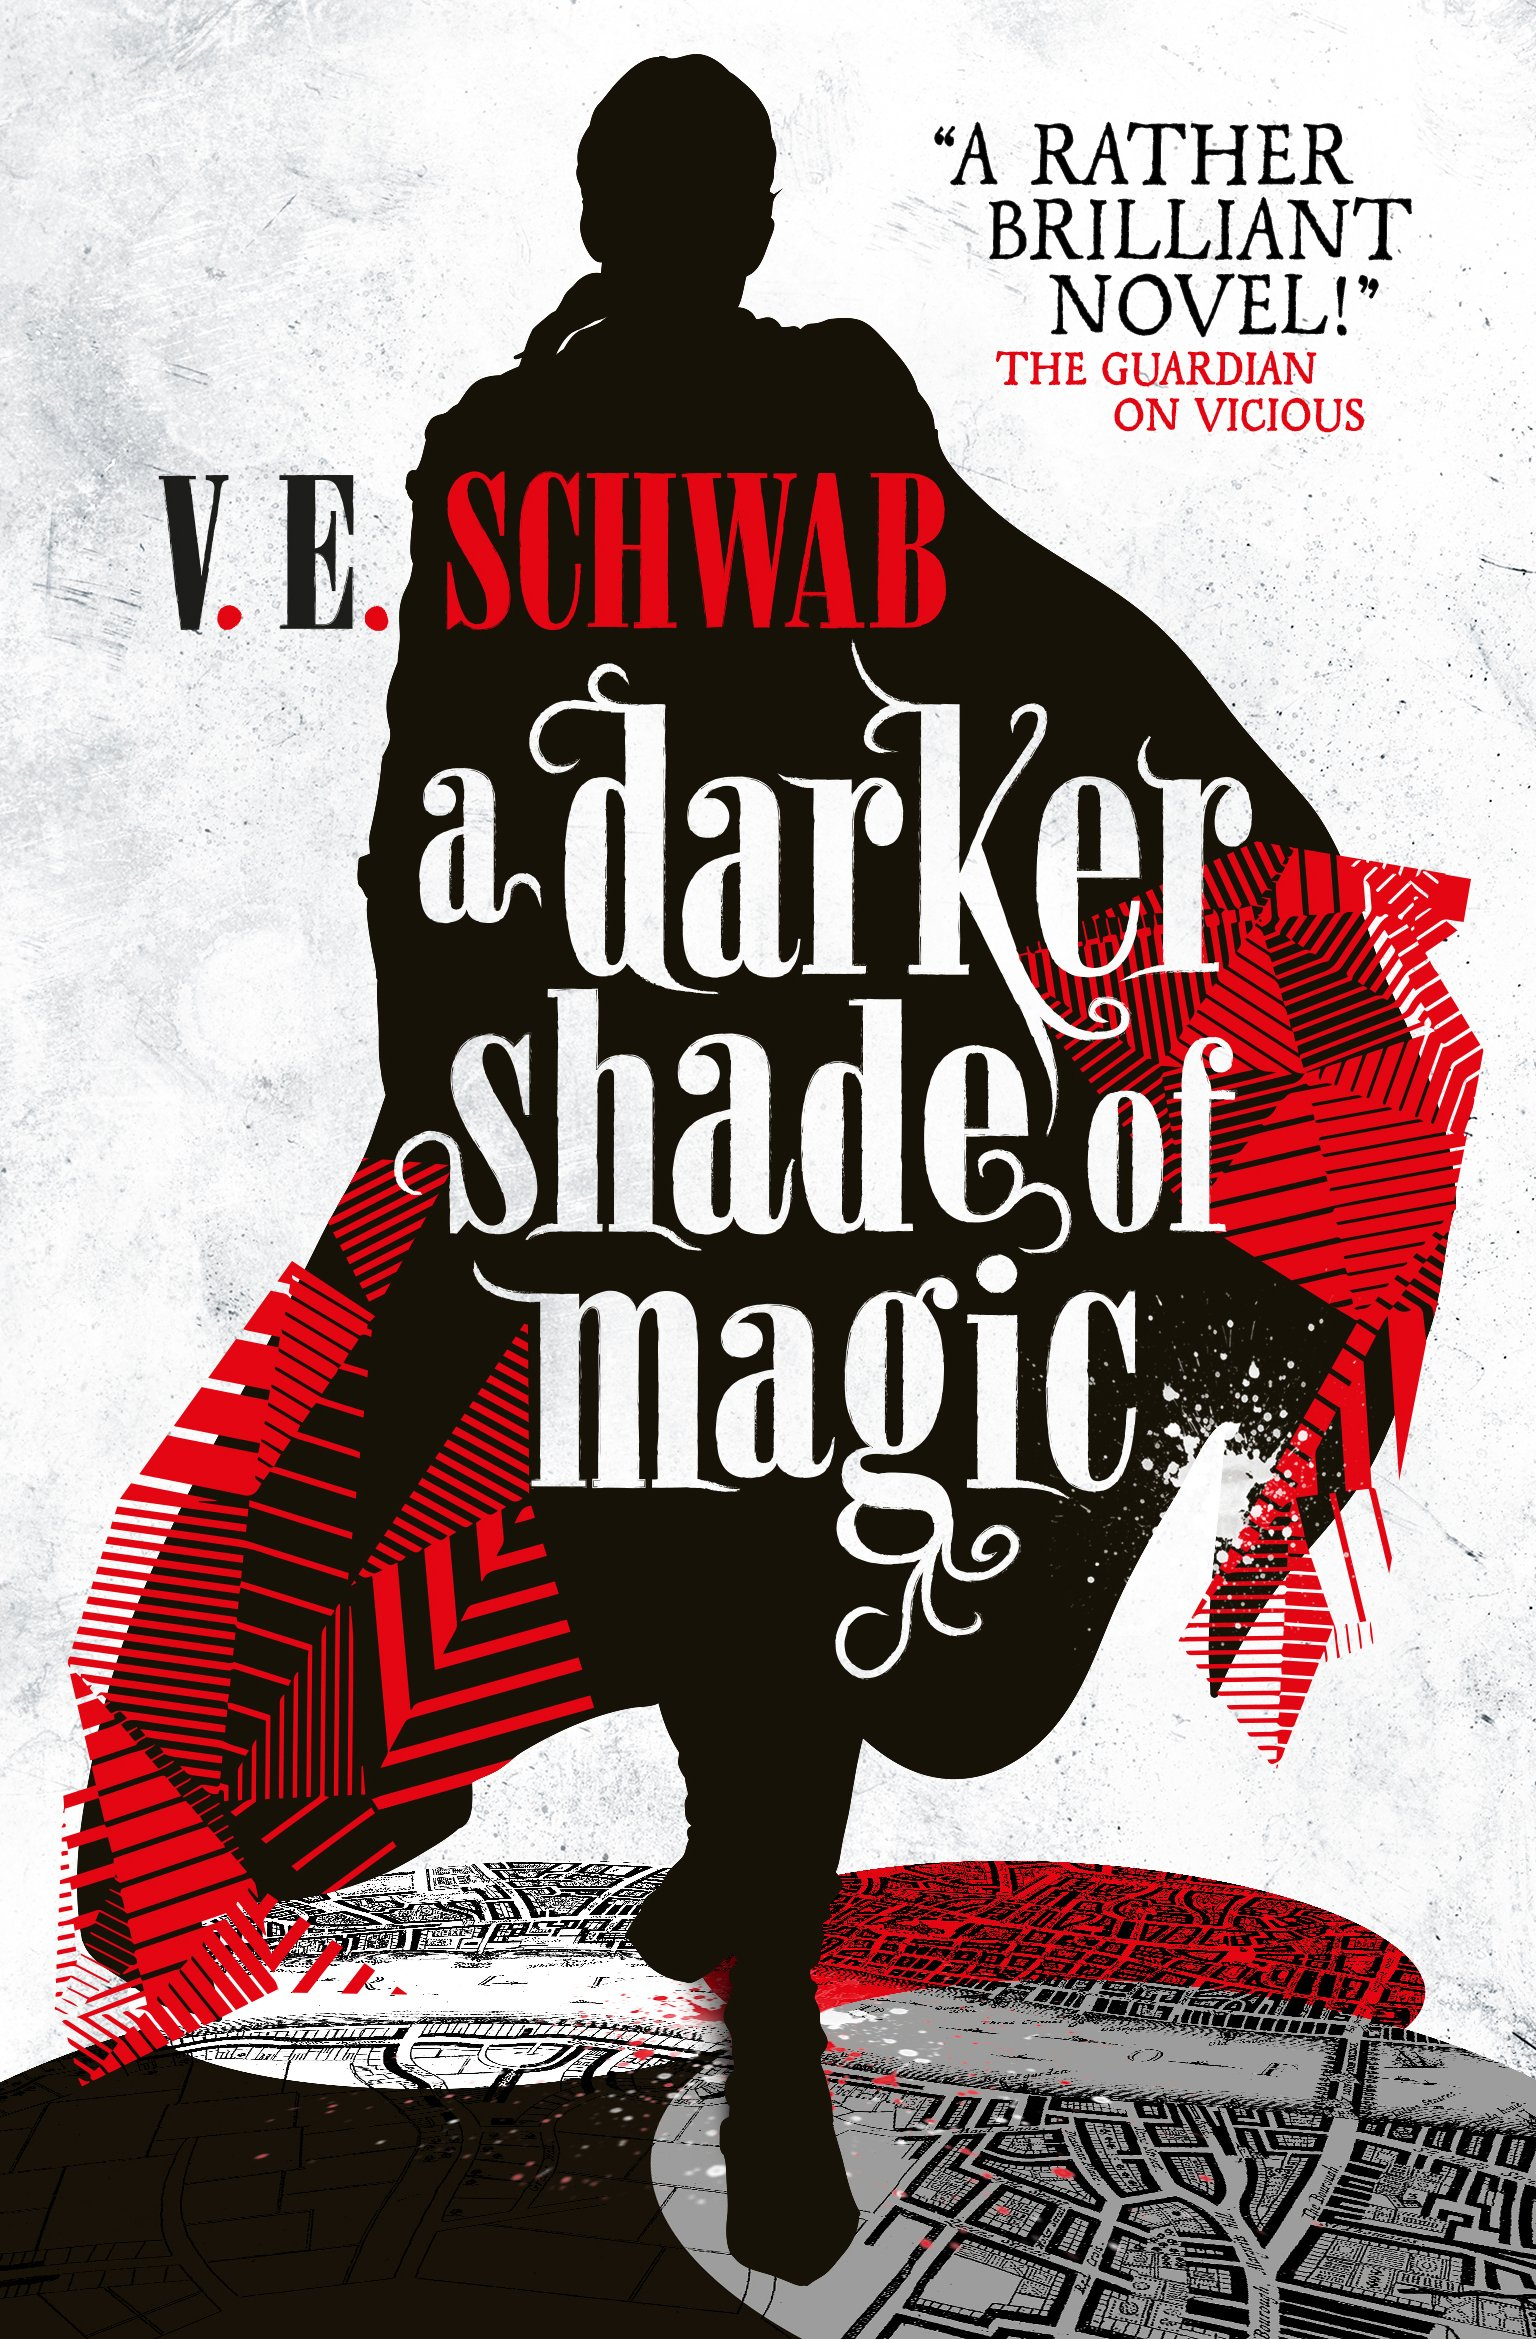 A Darker Shade of Magic: Amazon.co.uk: V. E. Schwab, Victoria Schwab:  9781783295401: Books